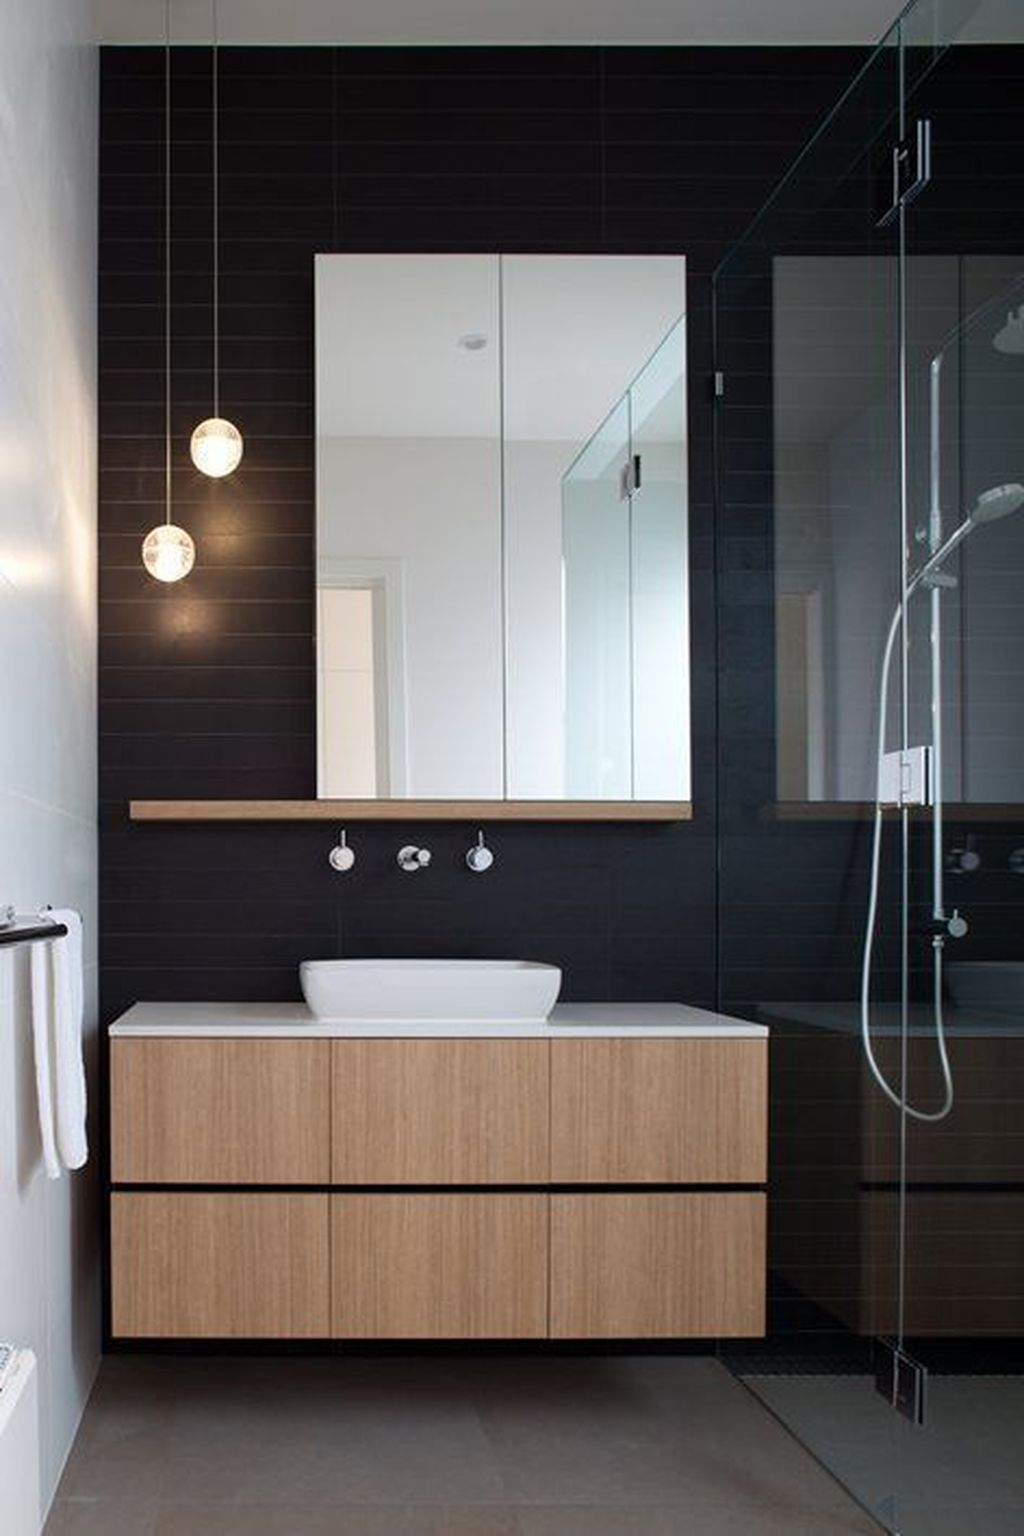 Inspiring Black Powder Room Design Ideas With Modern Style 03